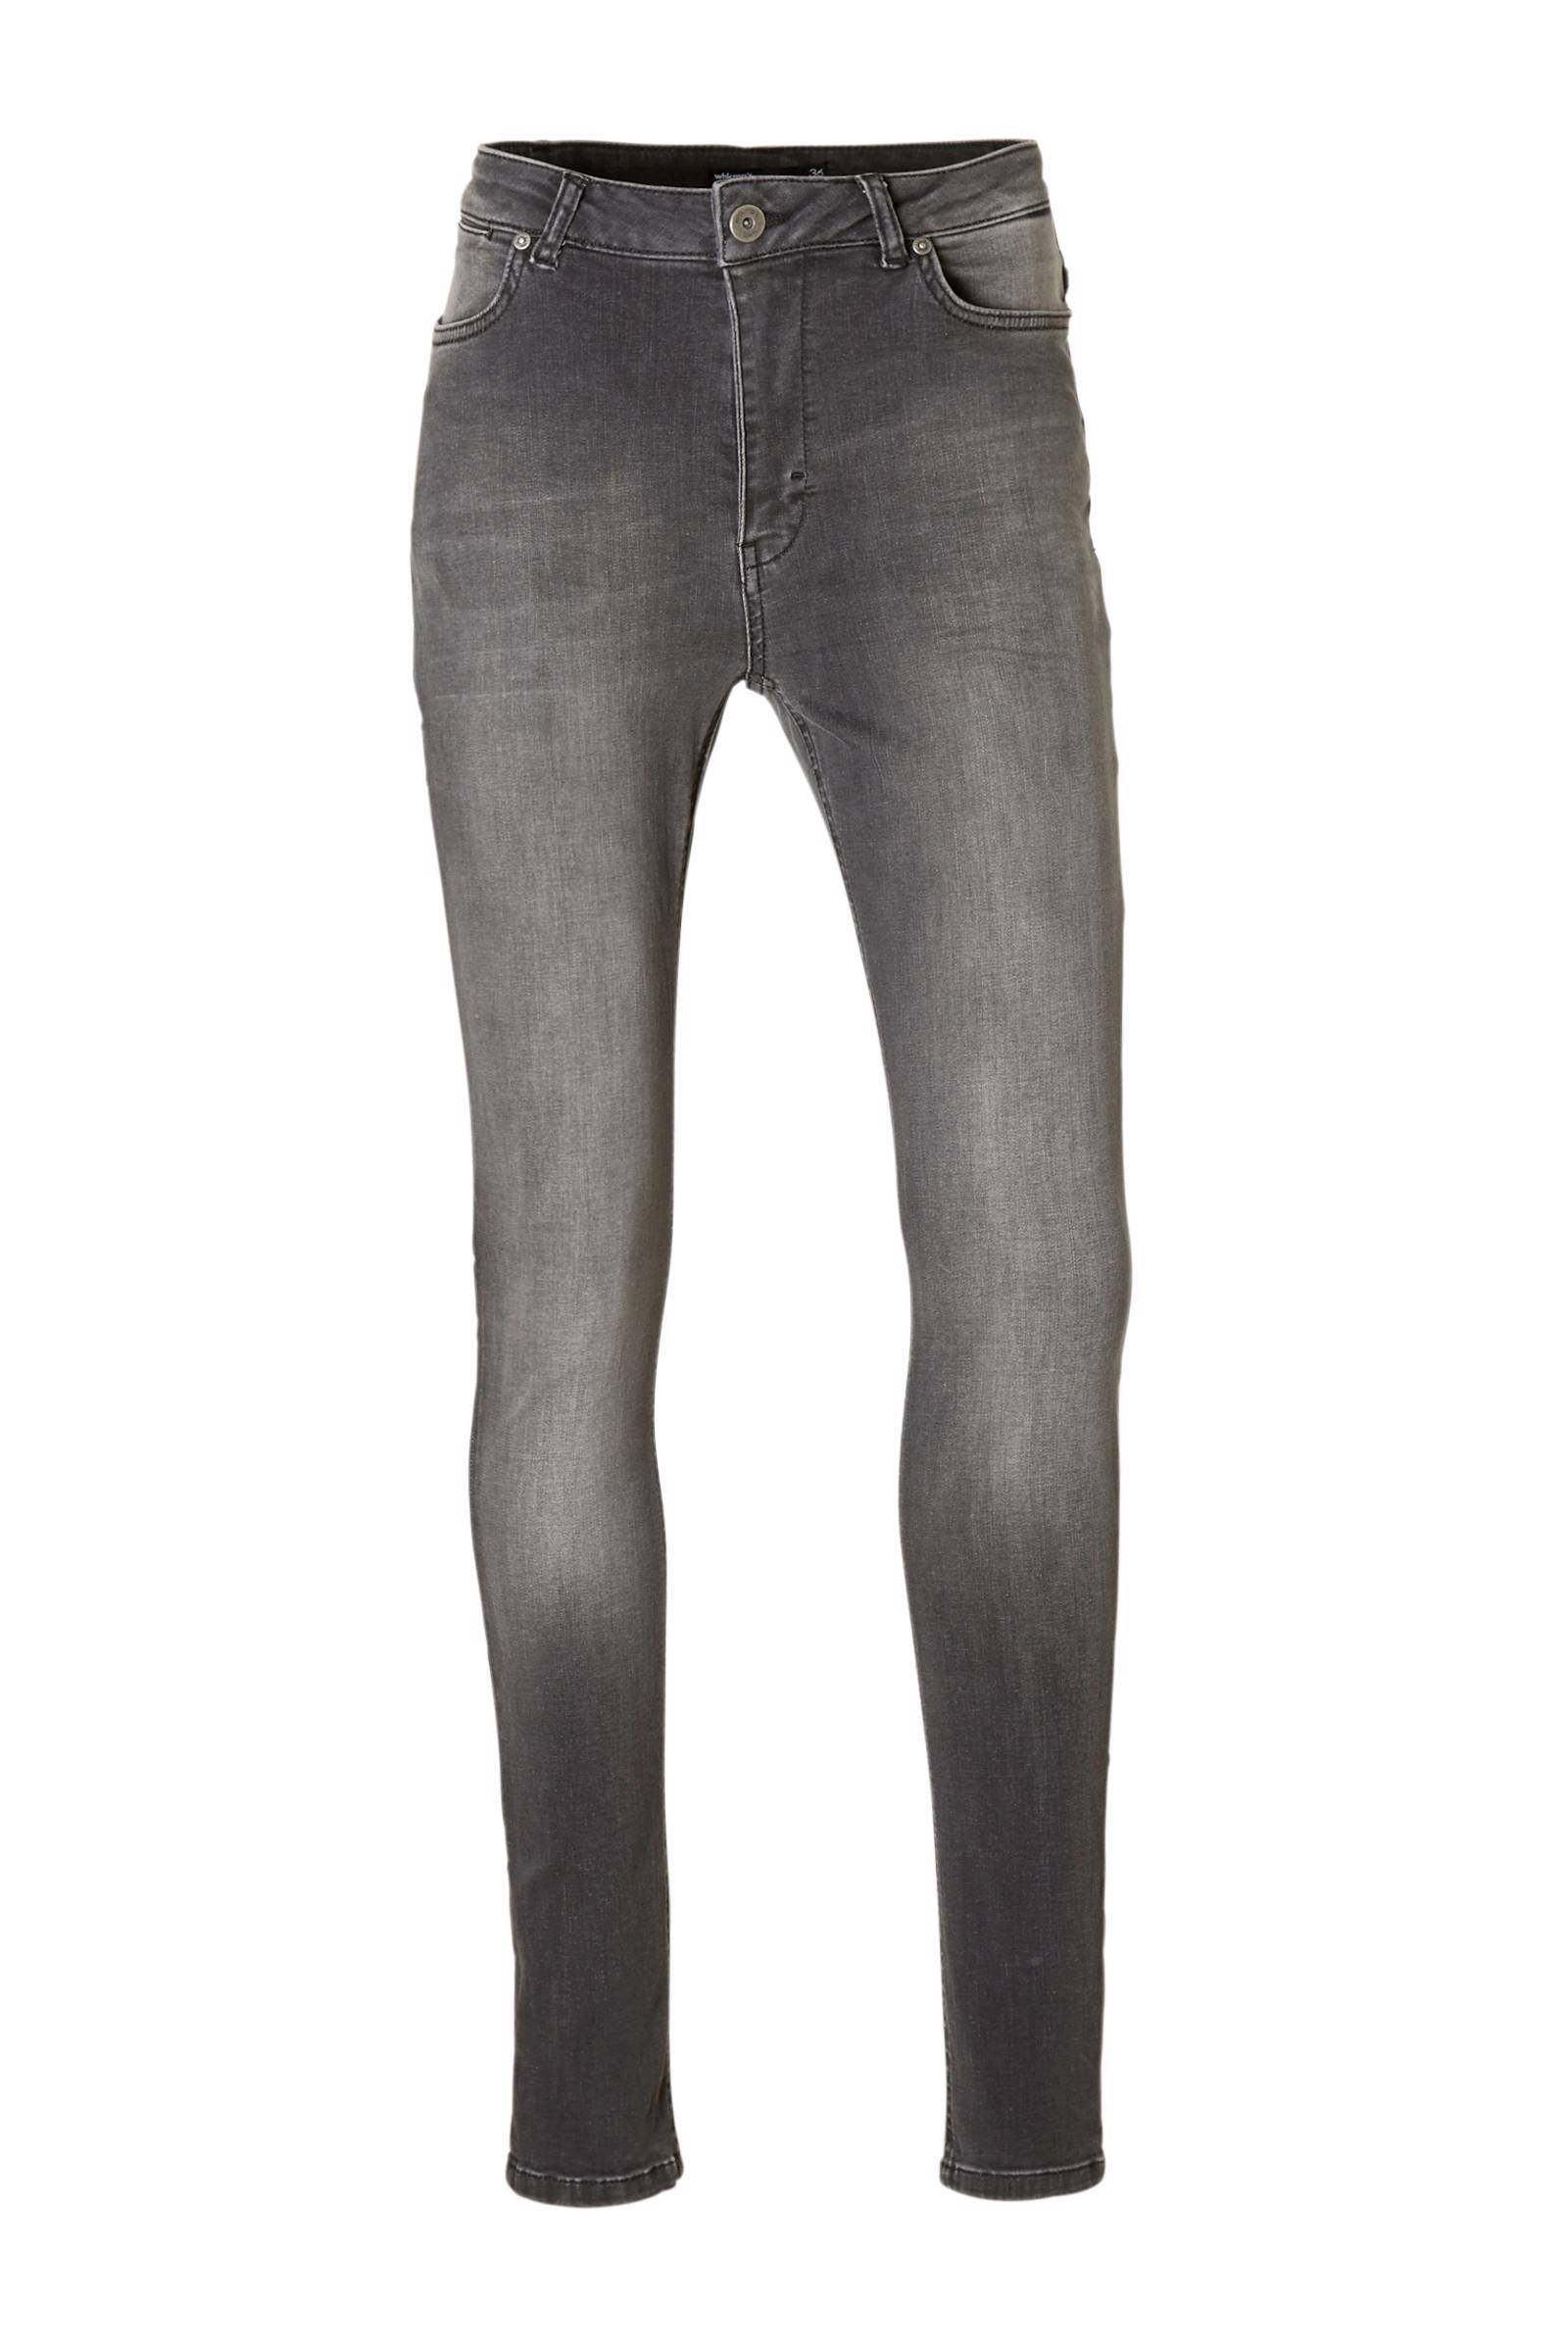 whkmp's own super comfort skinny high waist denim (dames)